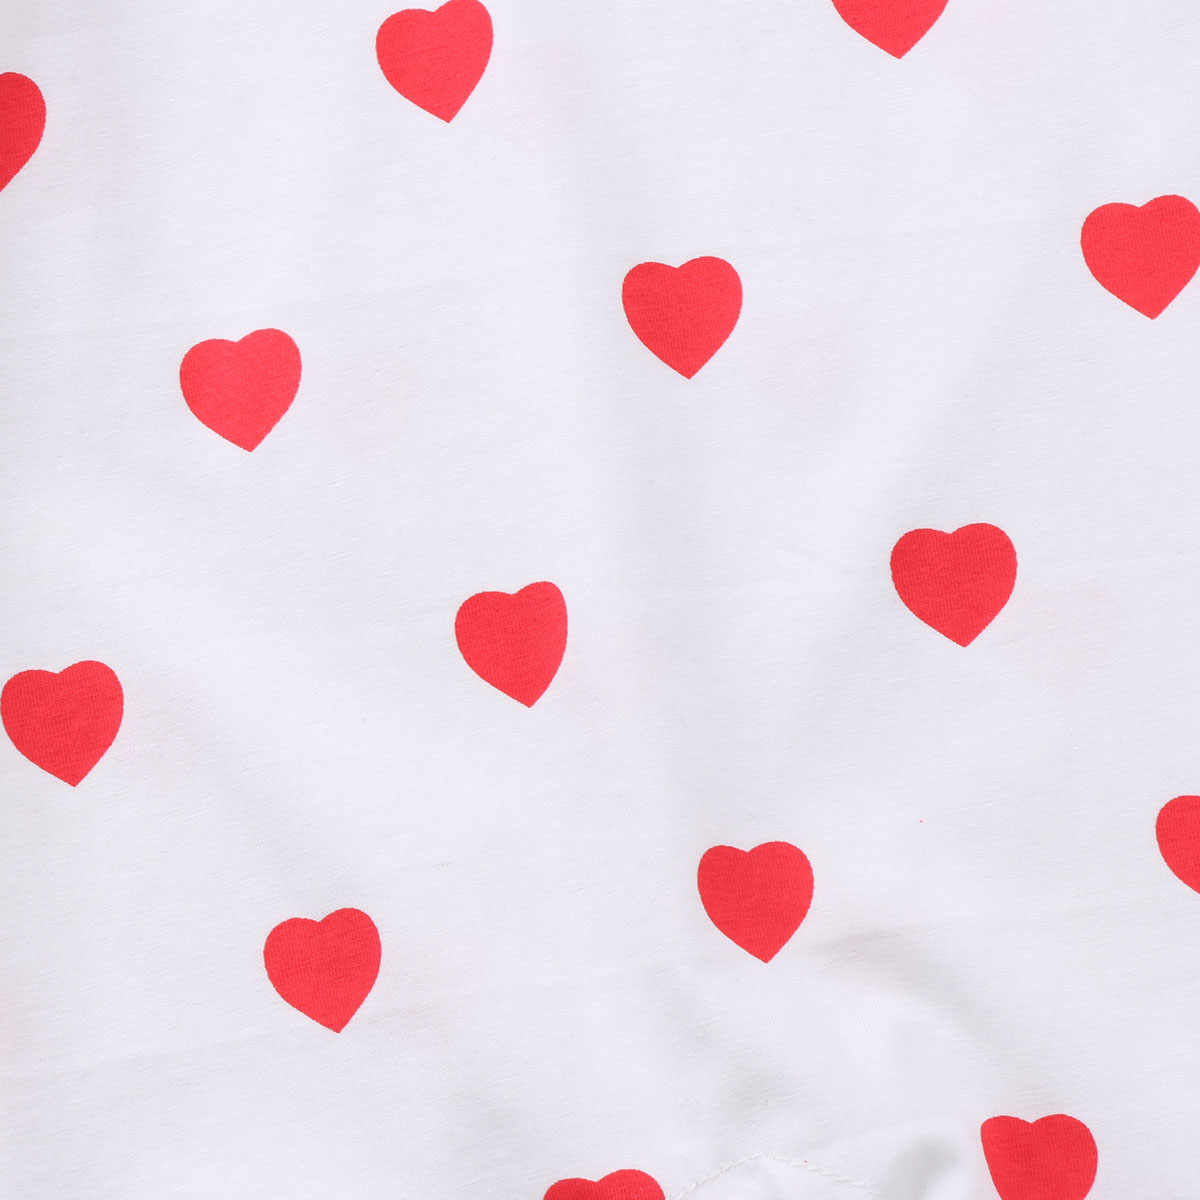 4bb4218e7532 2018 Infant Baby Girl Boy Long Sleeves Romper Jumpsuit Playsuit Lovely  Heart Outfits Cute Valentine Pajamas Clothing